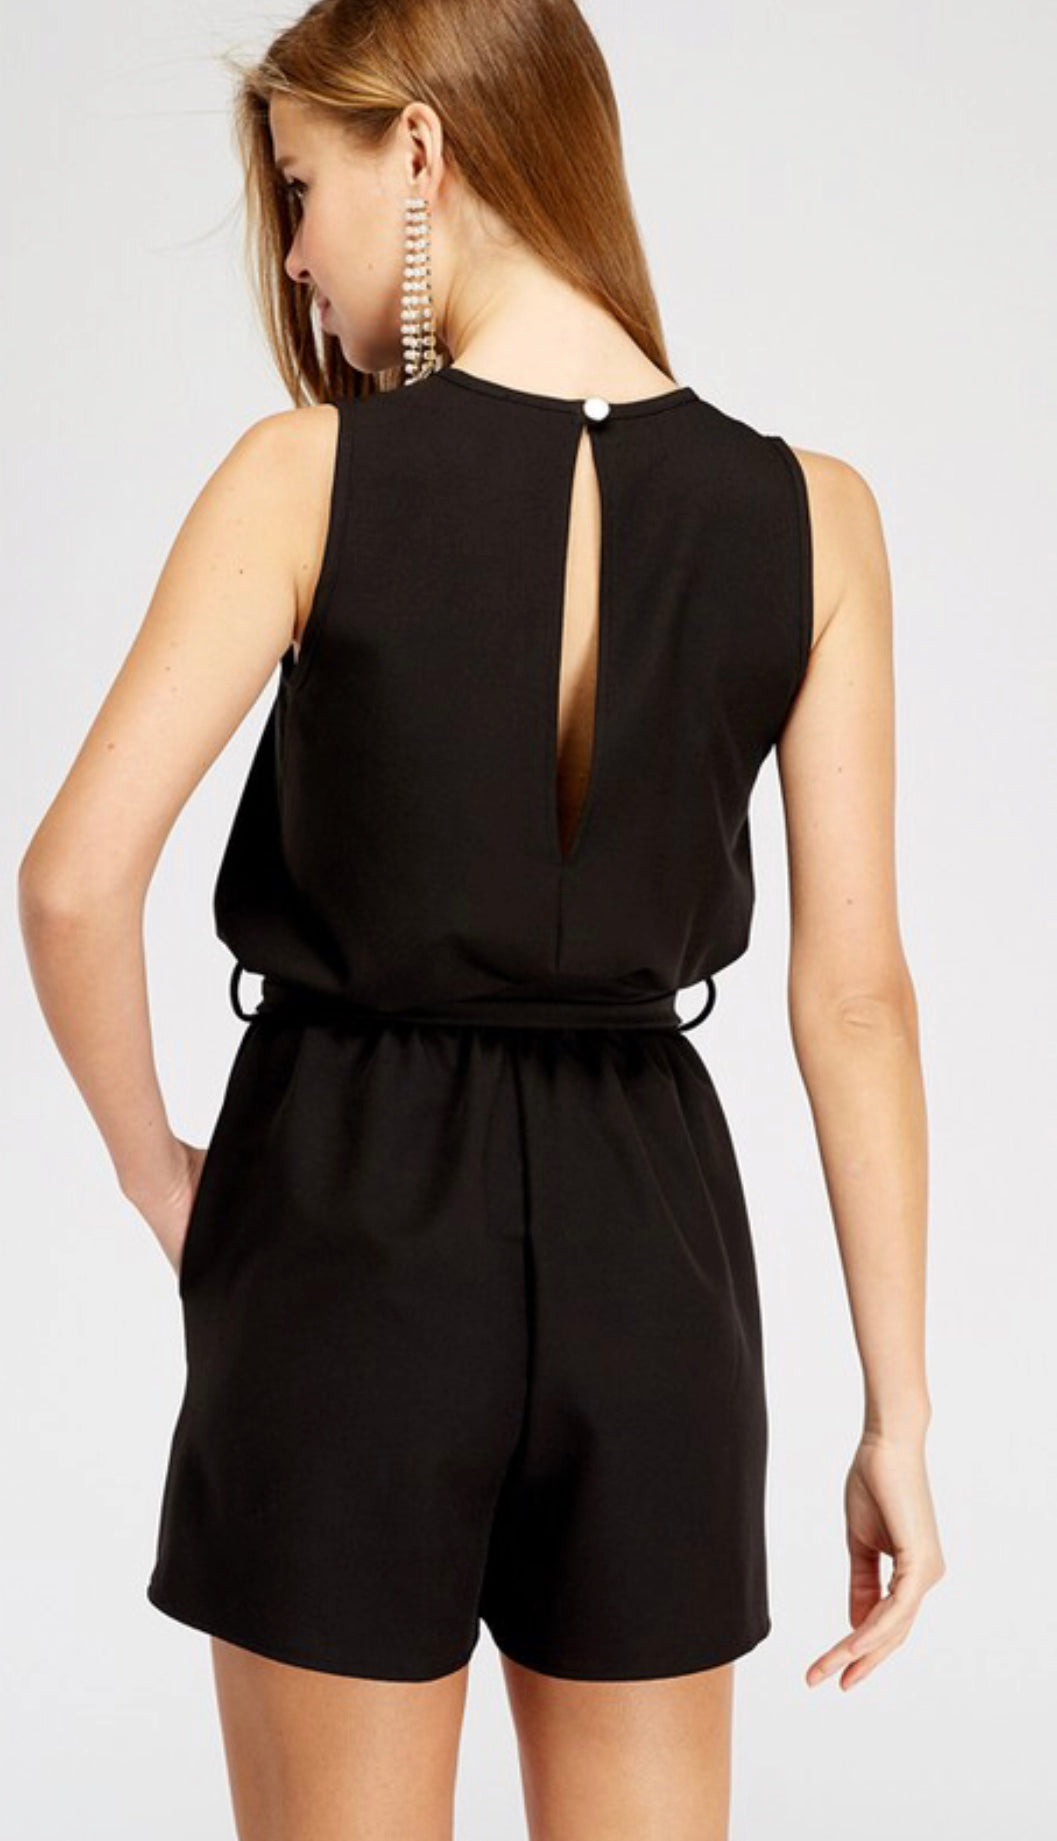 All About You Black Romper